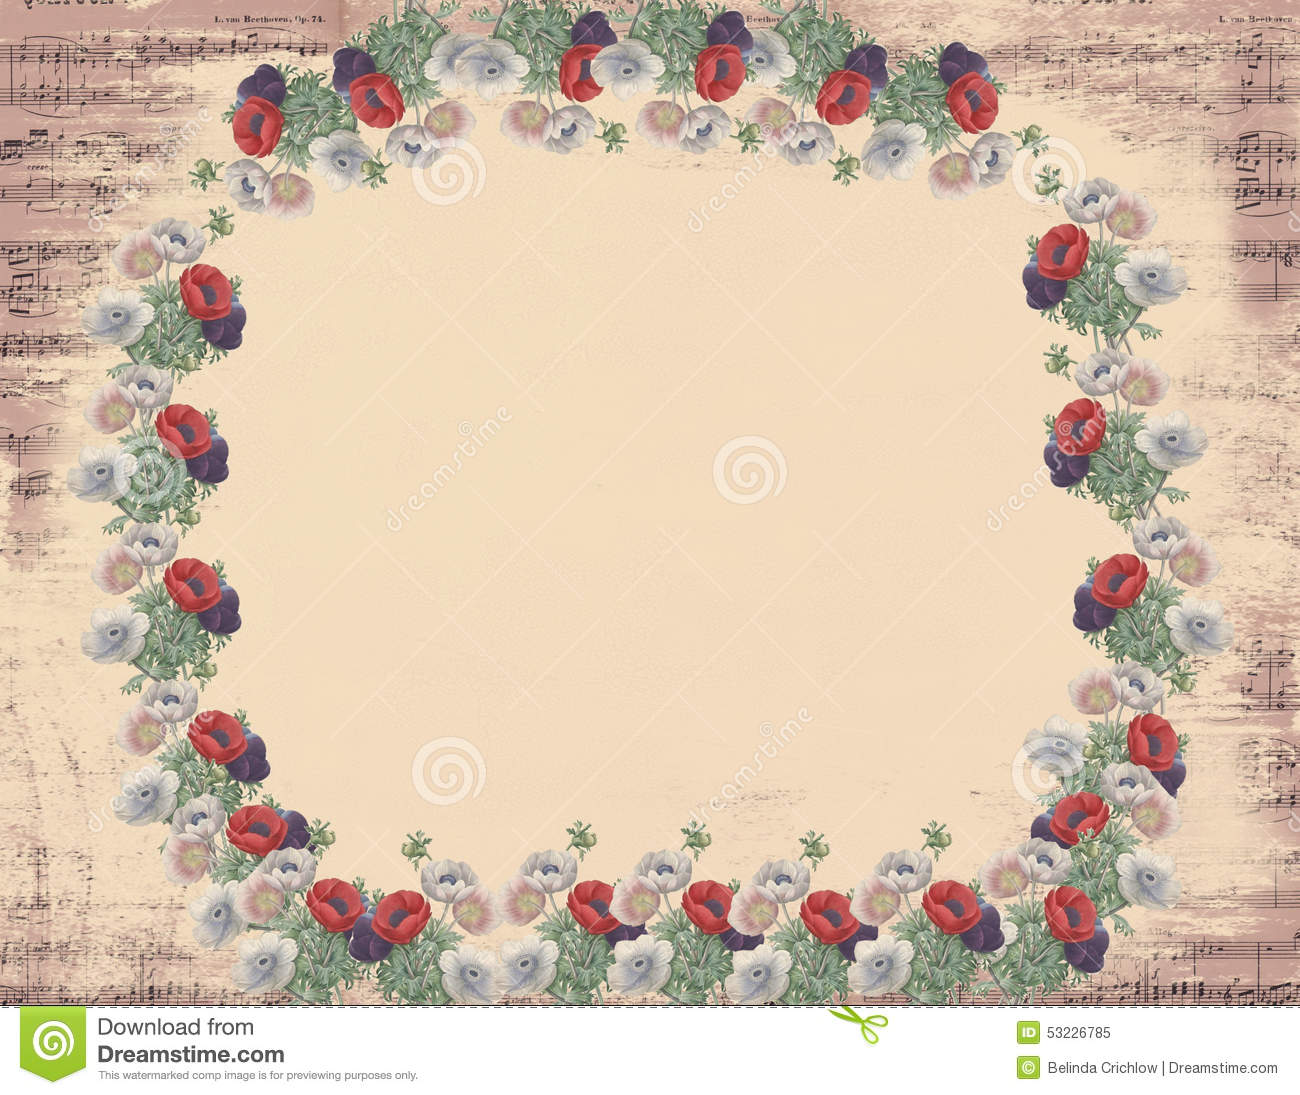 Romantic flowery musical note stock image image of frame quotes romantic flowery musical note this romantic design is a mixed with flowers and torn sheet of paper to give a vintage retro classical or old world feel mightylinksfo